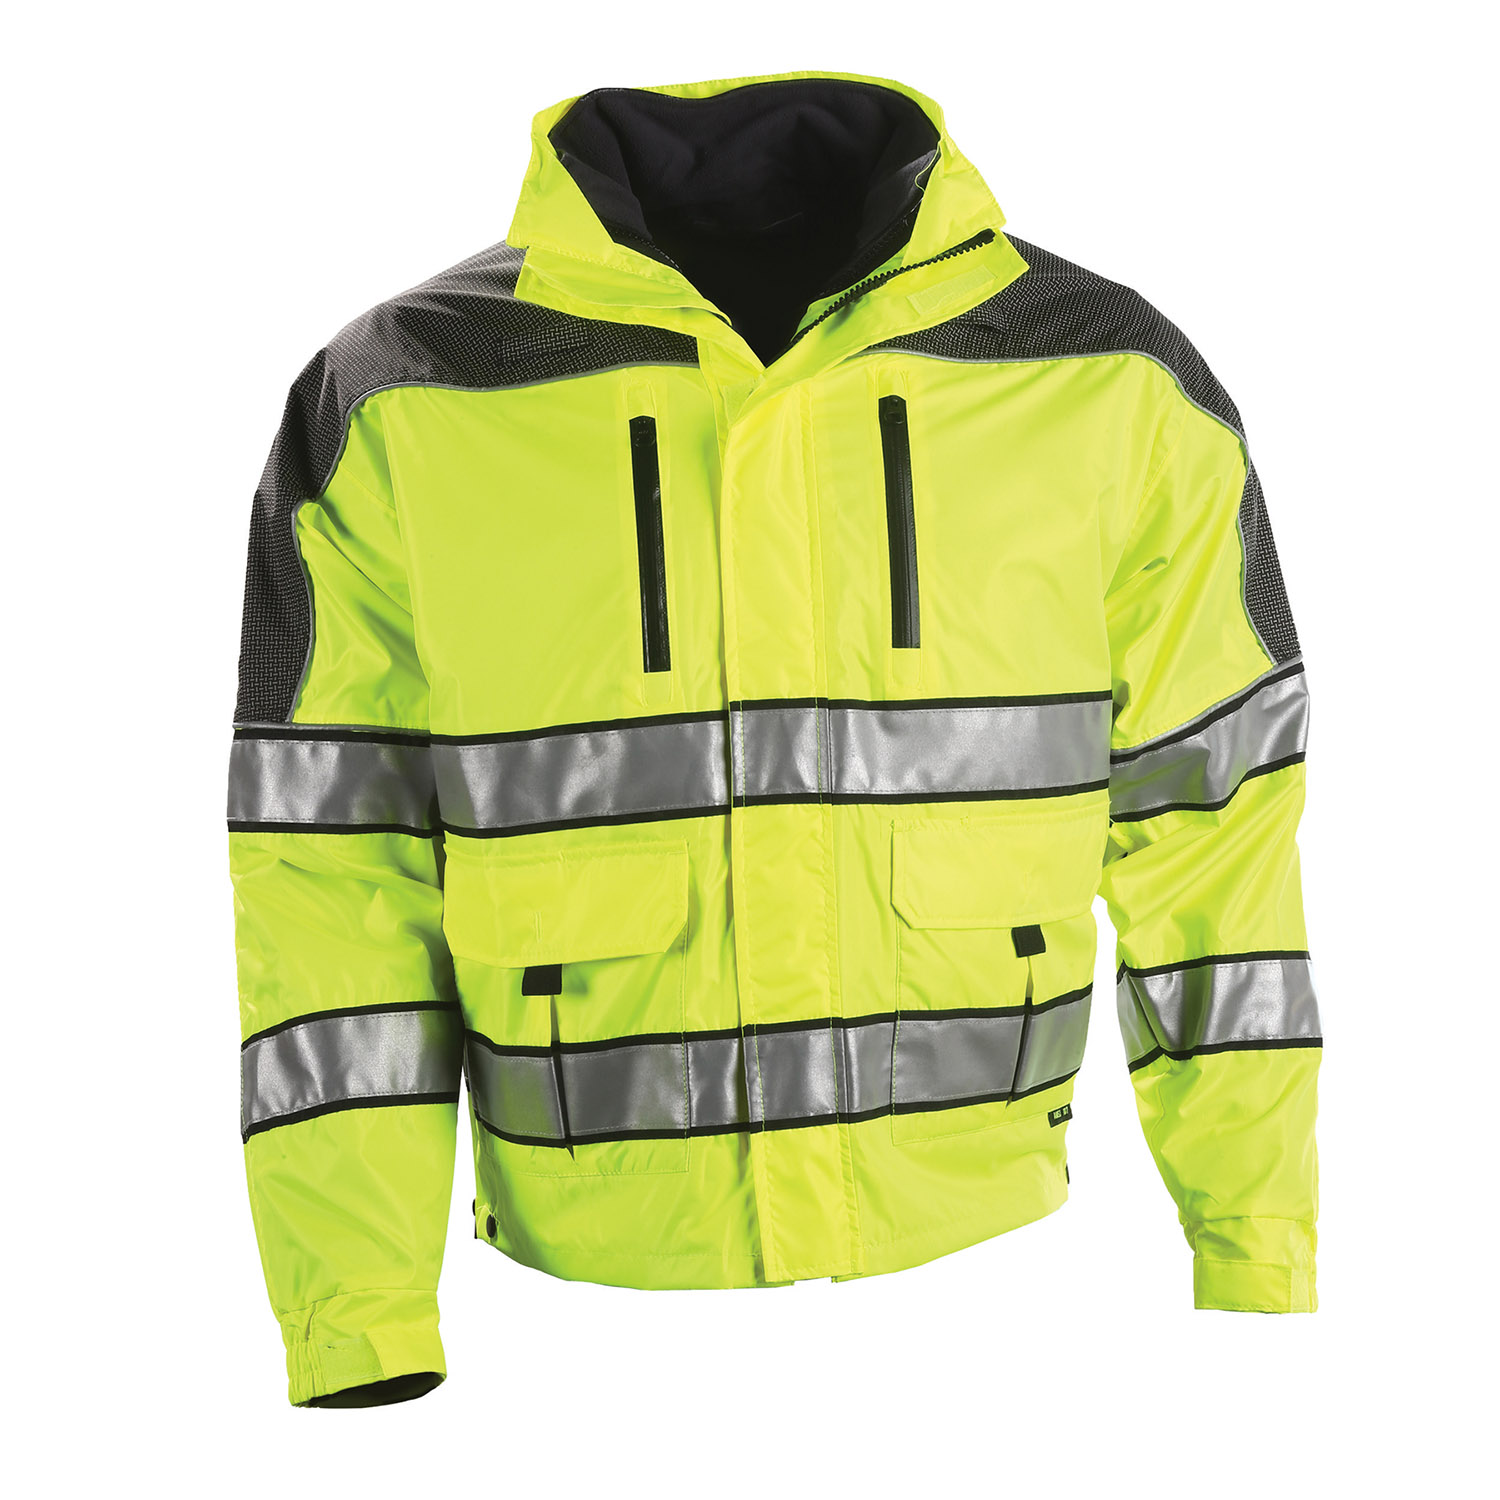 Gerber Outerwear Eclipse SX Lime Jacket with Warrior Softshe